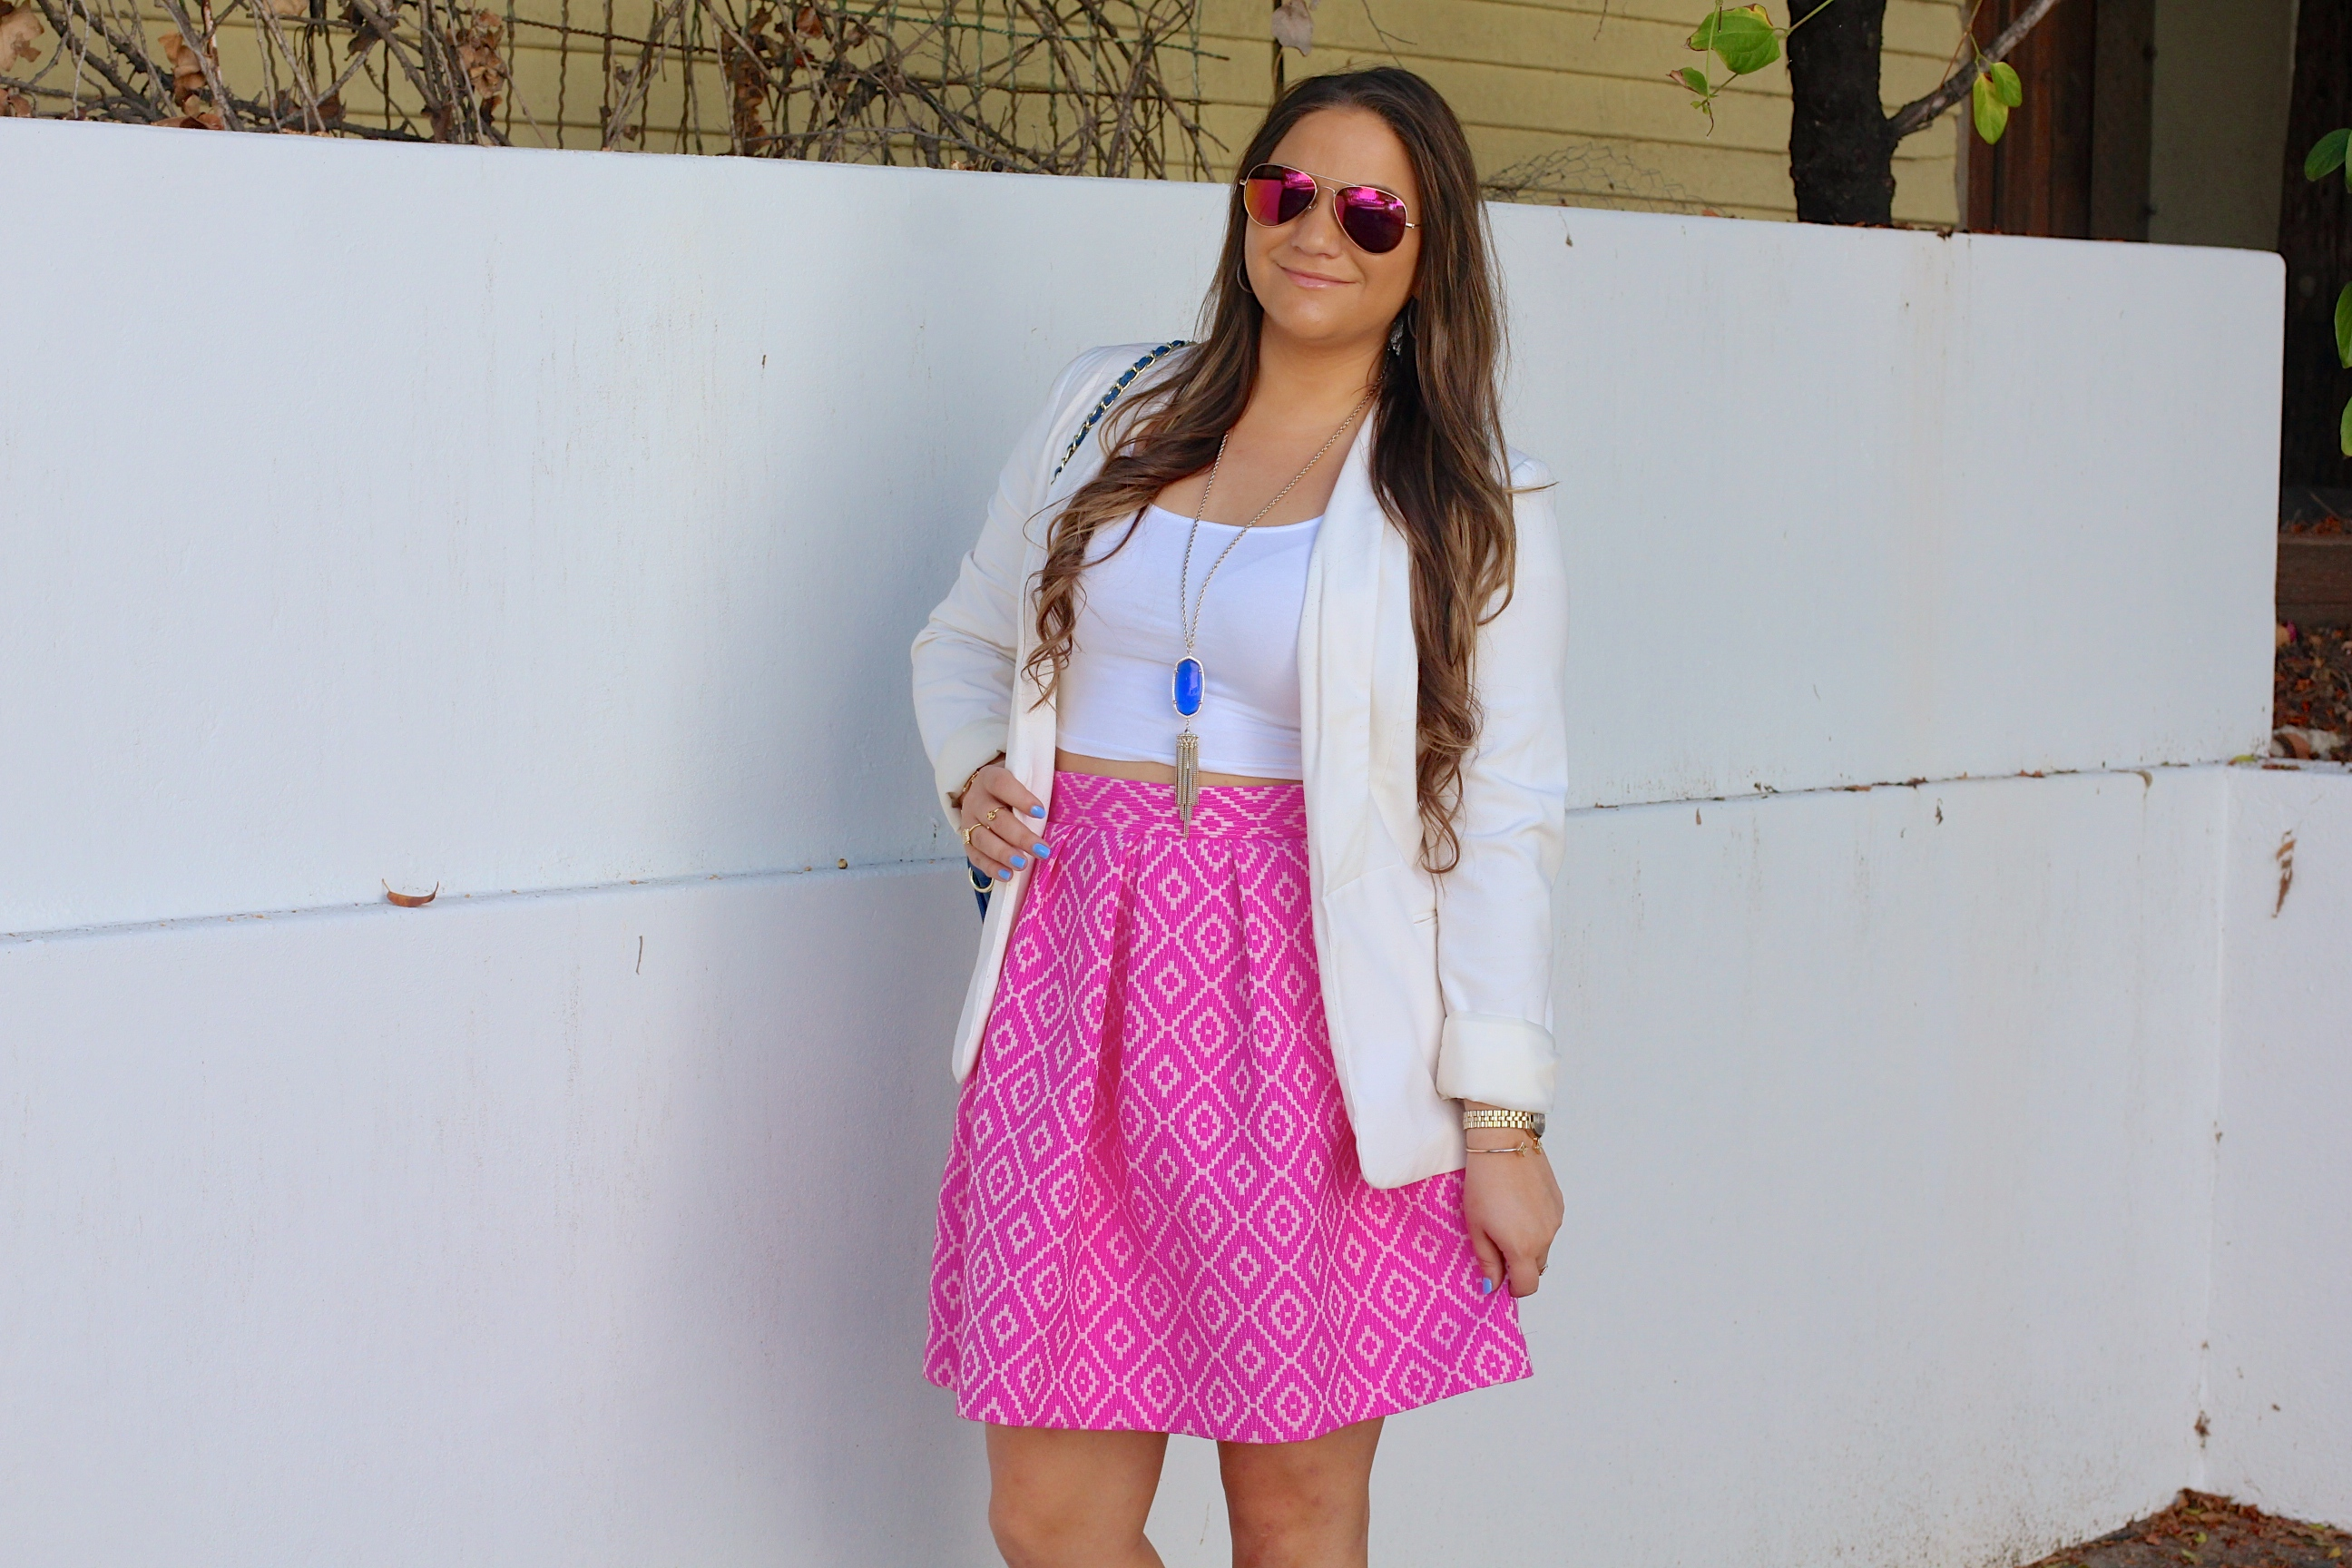 missyonmadison, melissa tierney, hutch design, pink midi skirt, pink printed skirt, white crop top, white boyfriend blazer, white blazer, ray bans, pink aviators, pink ray bans, kendra scott, kendra scott rayne necklace, blue quilted bag, cobalt quilted bag, cobalt bag, gray pumps, gray pointed toe pumps, brunette hair, la blogger, fall style, ootd, outfit inspo, street style, pop of color, colorful outfits, midi skirt, statement piece,